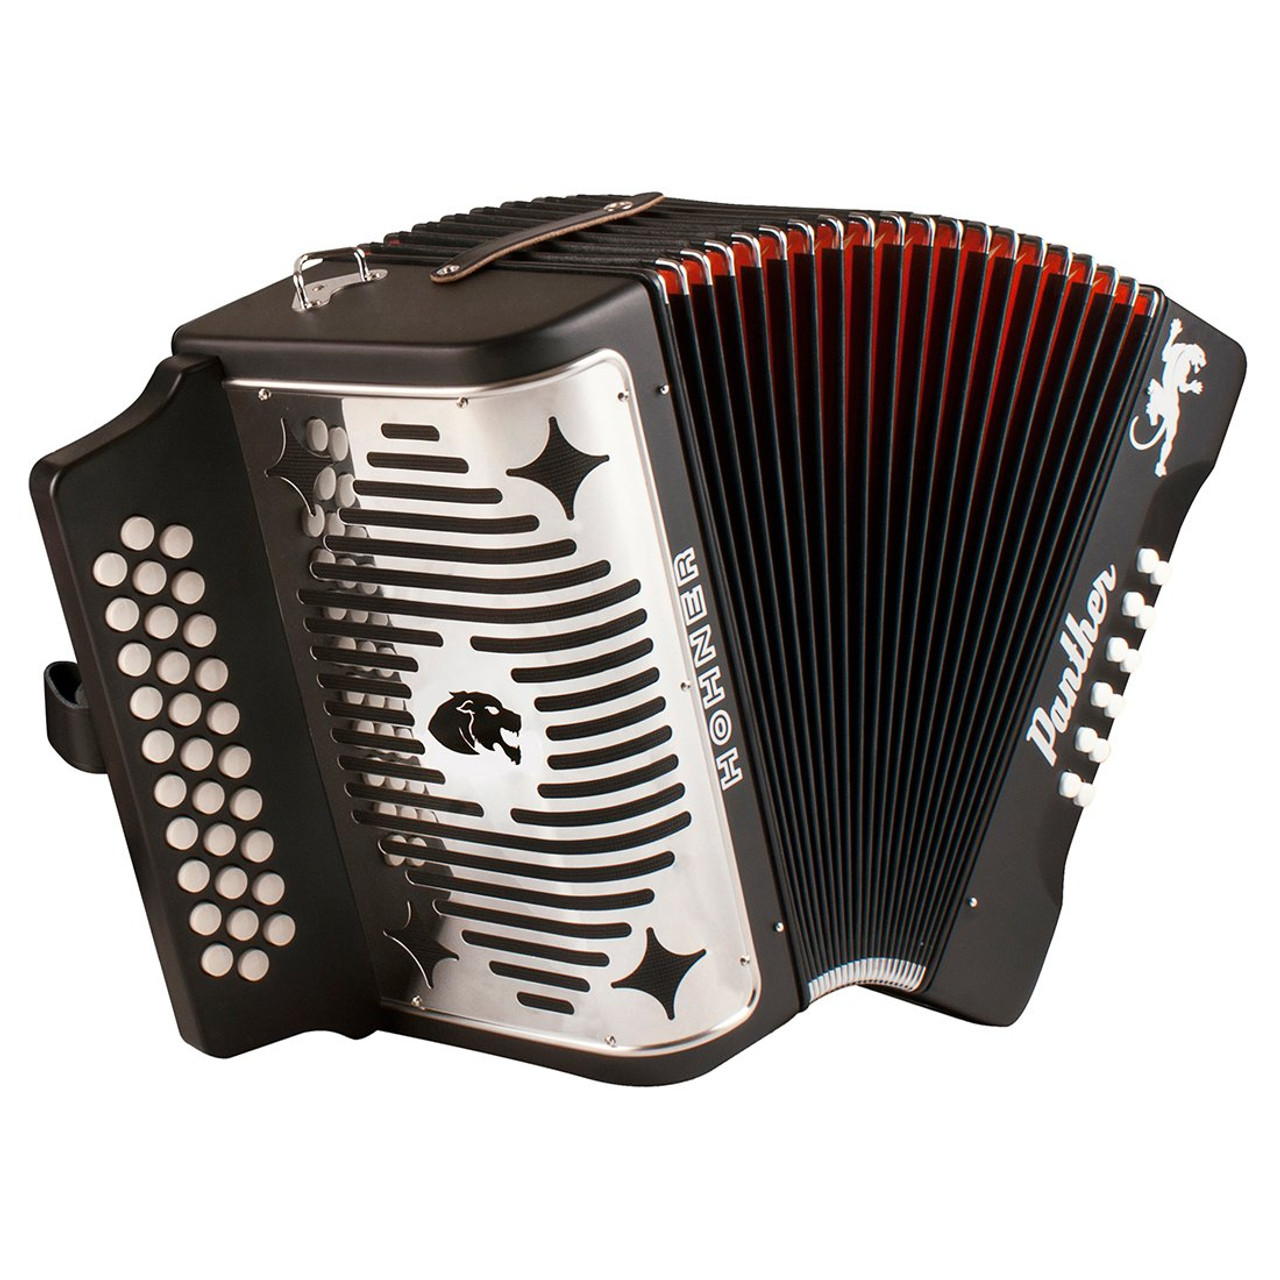 Hohner Panther A4840 F/Bb/Eb 3-row Diatonic Accordion - Black